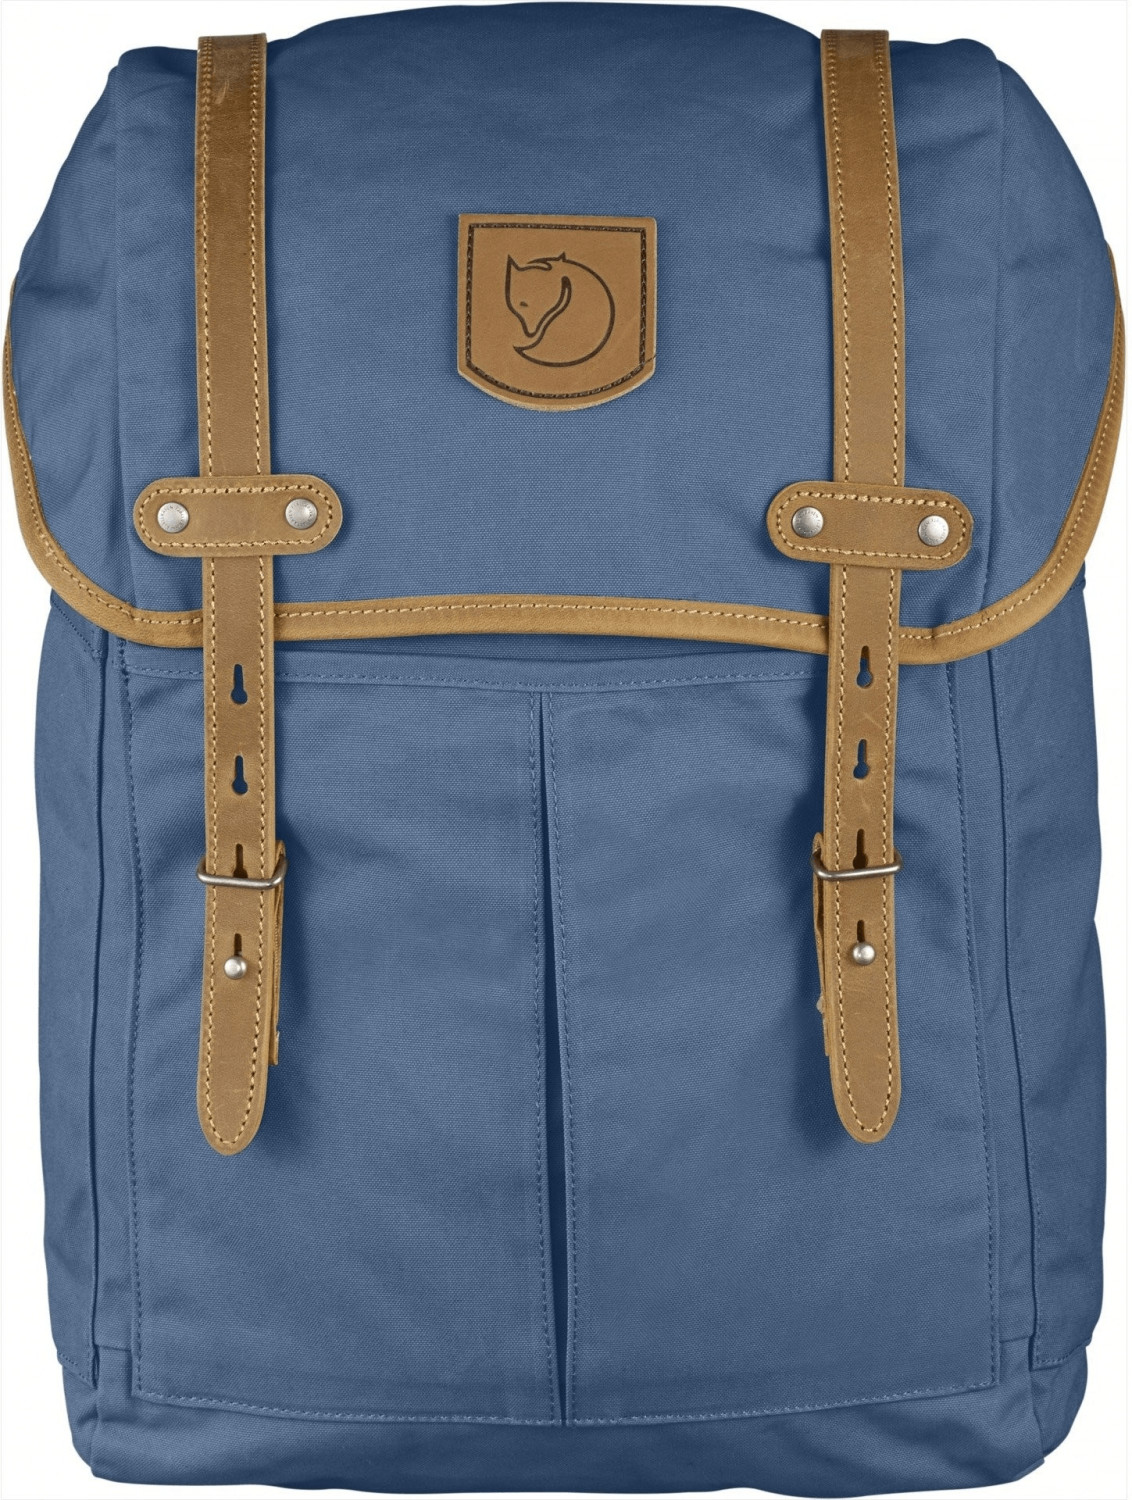 Fjällräven Backpack No. 21 Medium blue ridge